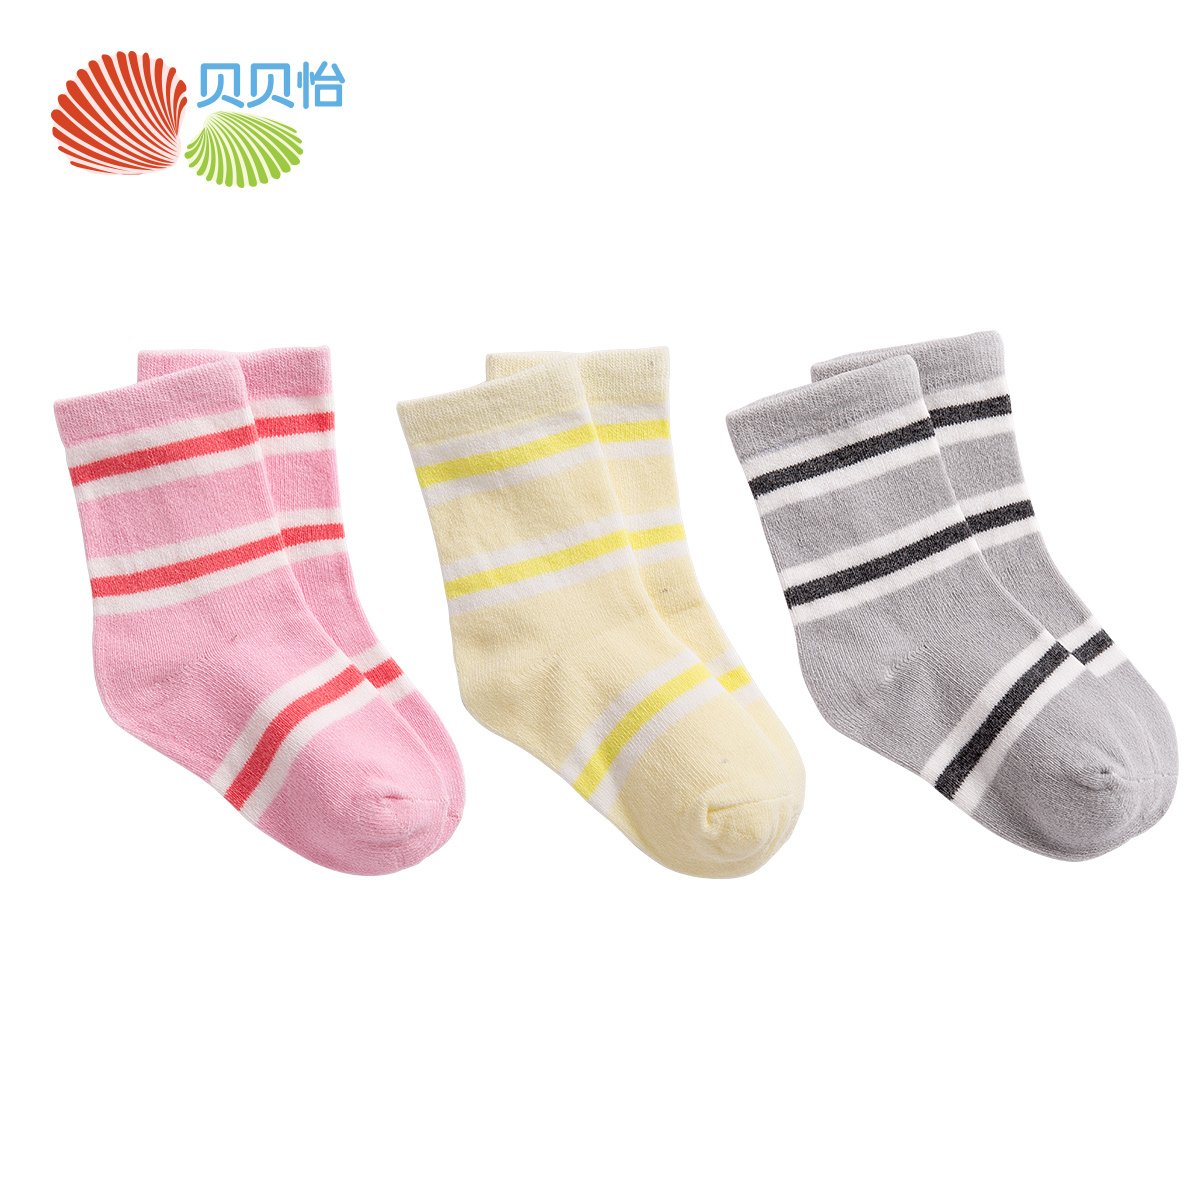 Beibei yi baby supplies seasons baby socks striped socks cotton socks for men and women soft and comfortable 3 pairs of dress 151P118